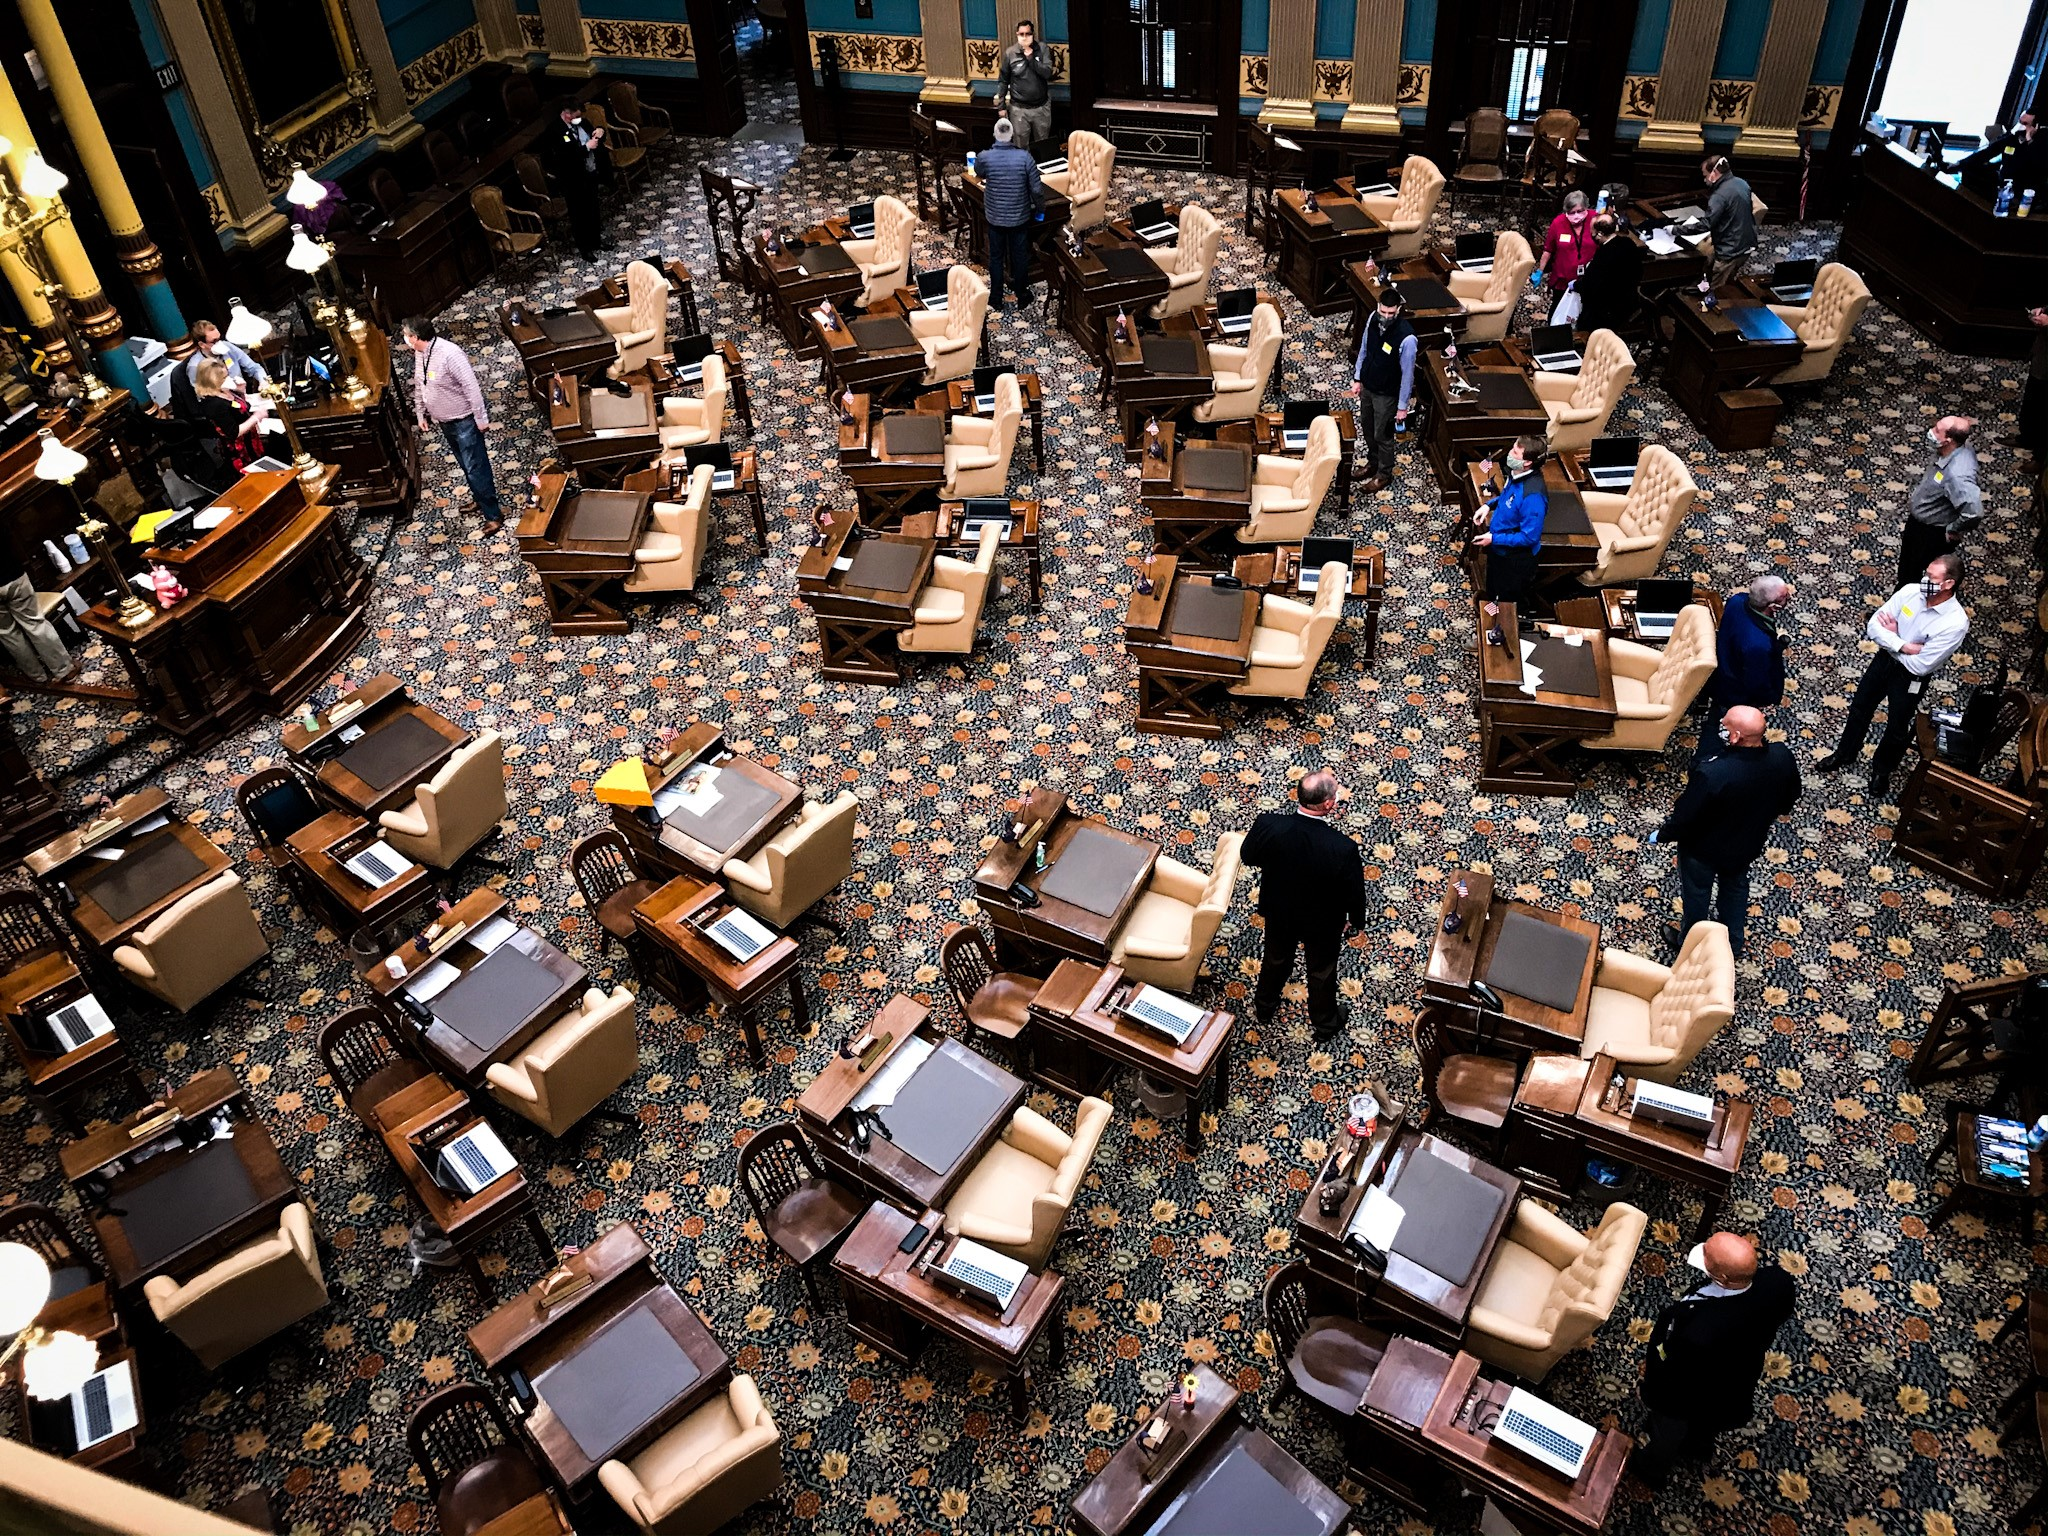 State senators practice social distancing measures in the Michigan Senate chamber on Tuesday, April 7, 2020. (SBG/Mikenzie Frost)